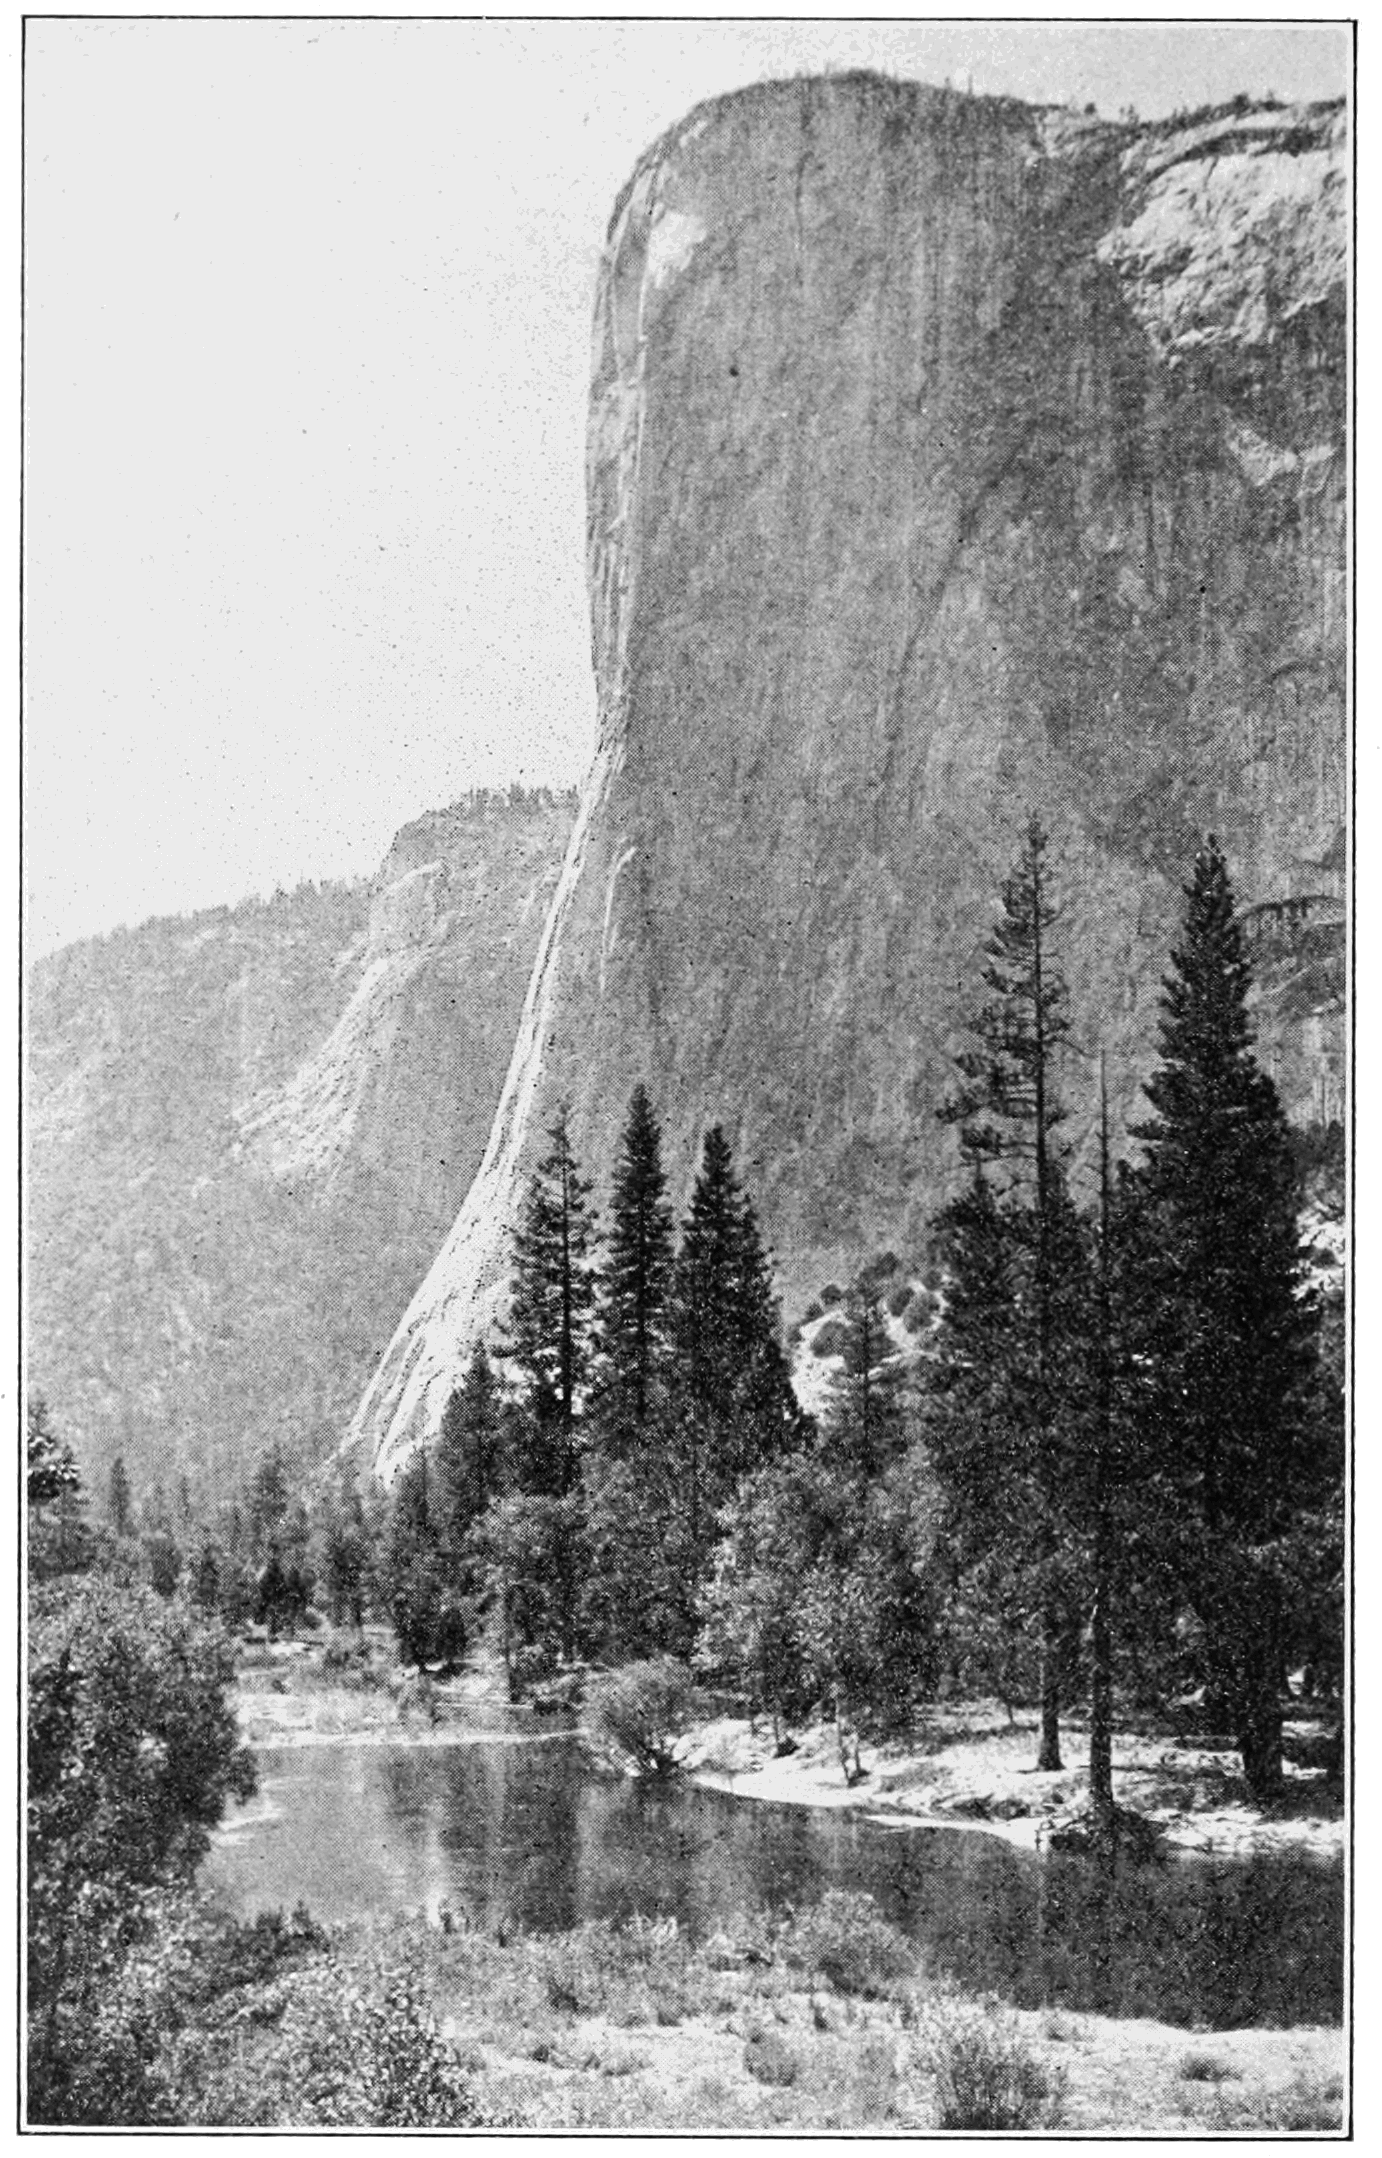 PSM V85 D074 El capitan 3100 foot sheer granite.png